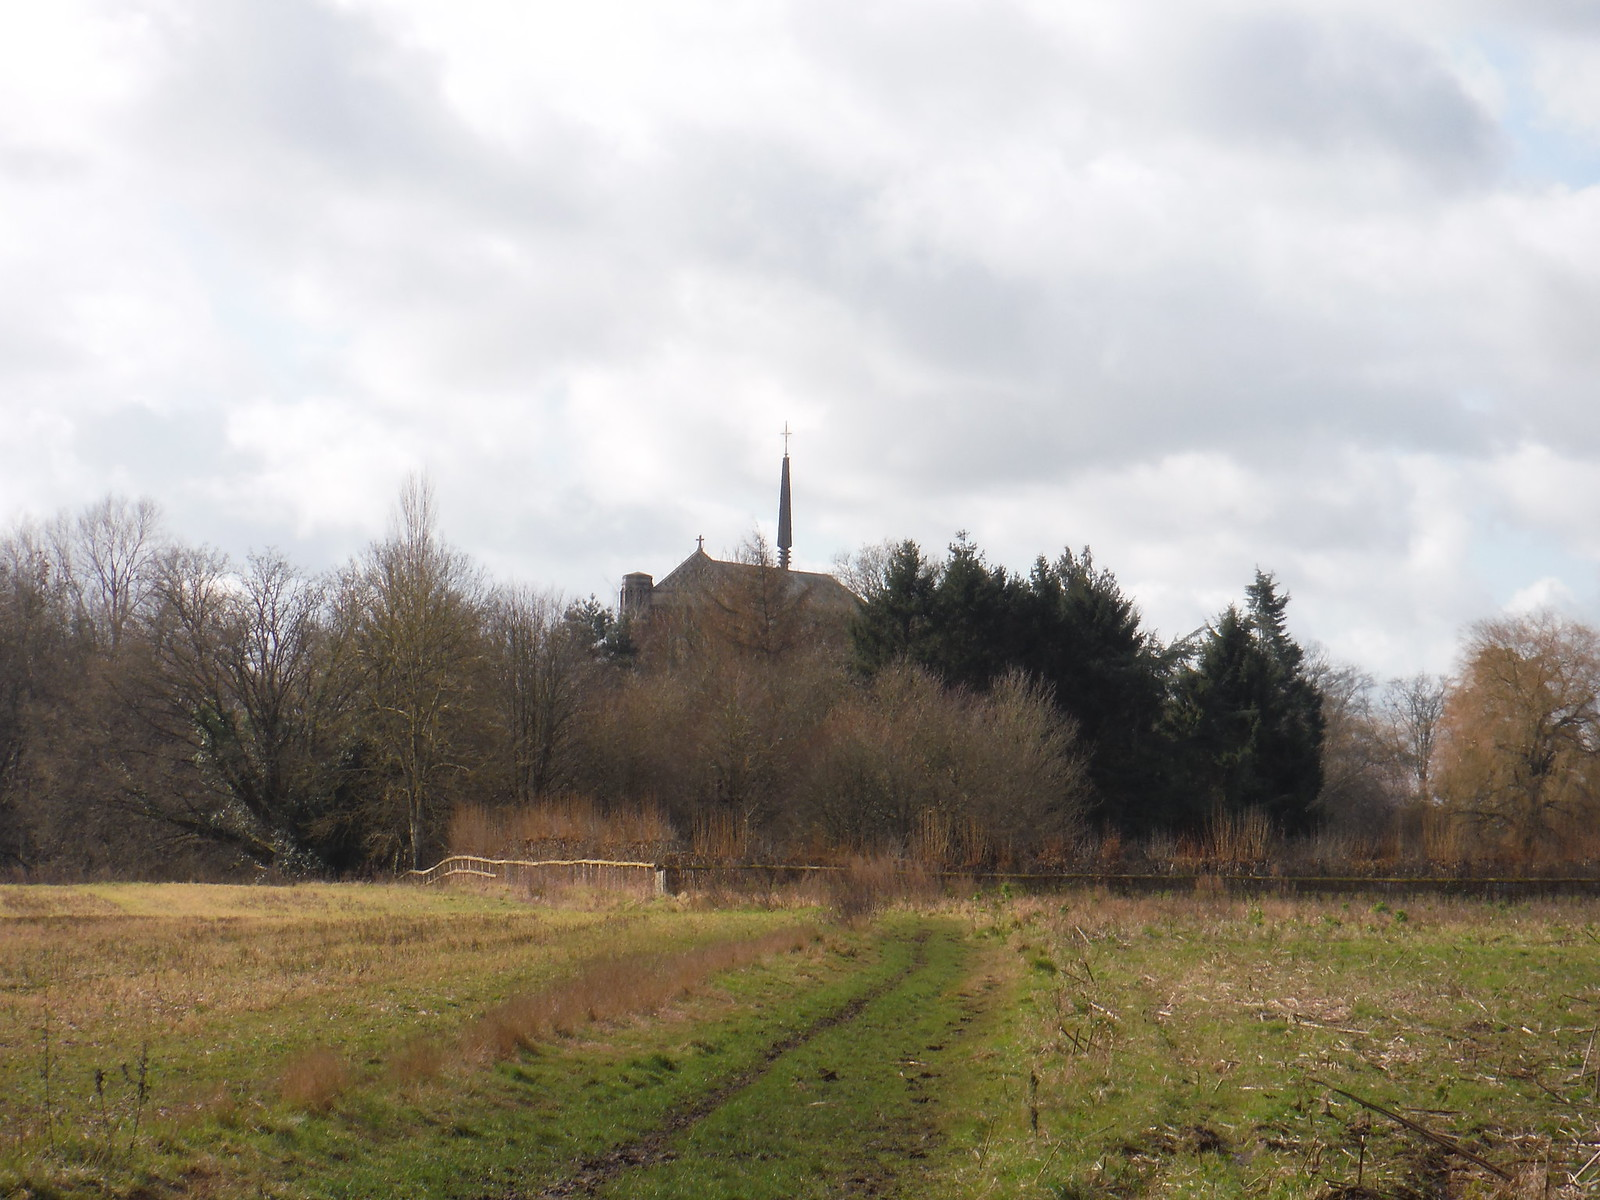 Douai Abbey from afar SWC Walk 117 Aldermaston to Woolhampton (via Stanford Dingley)